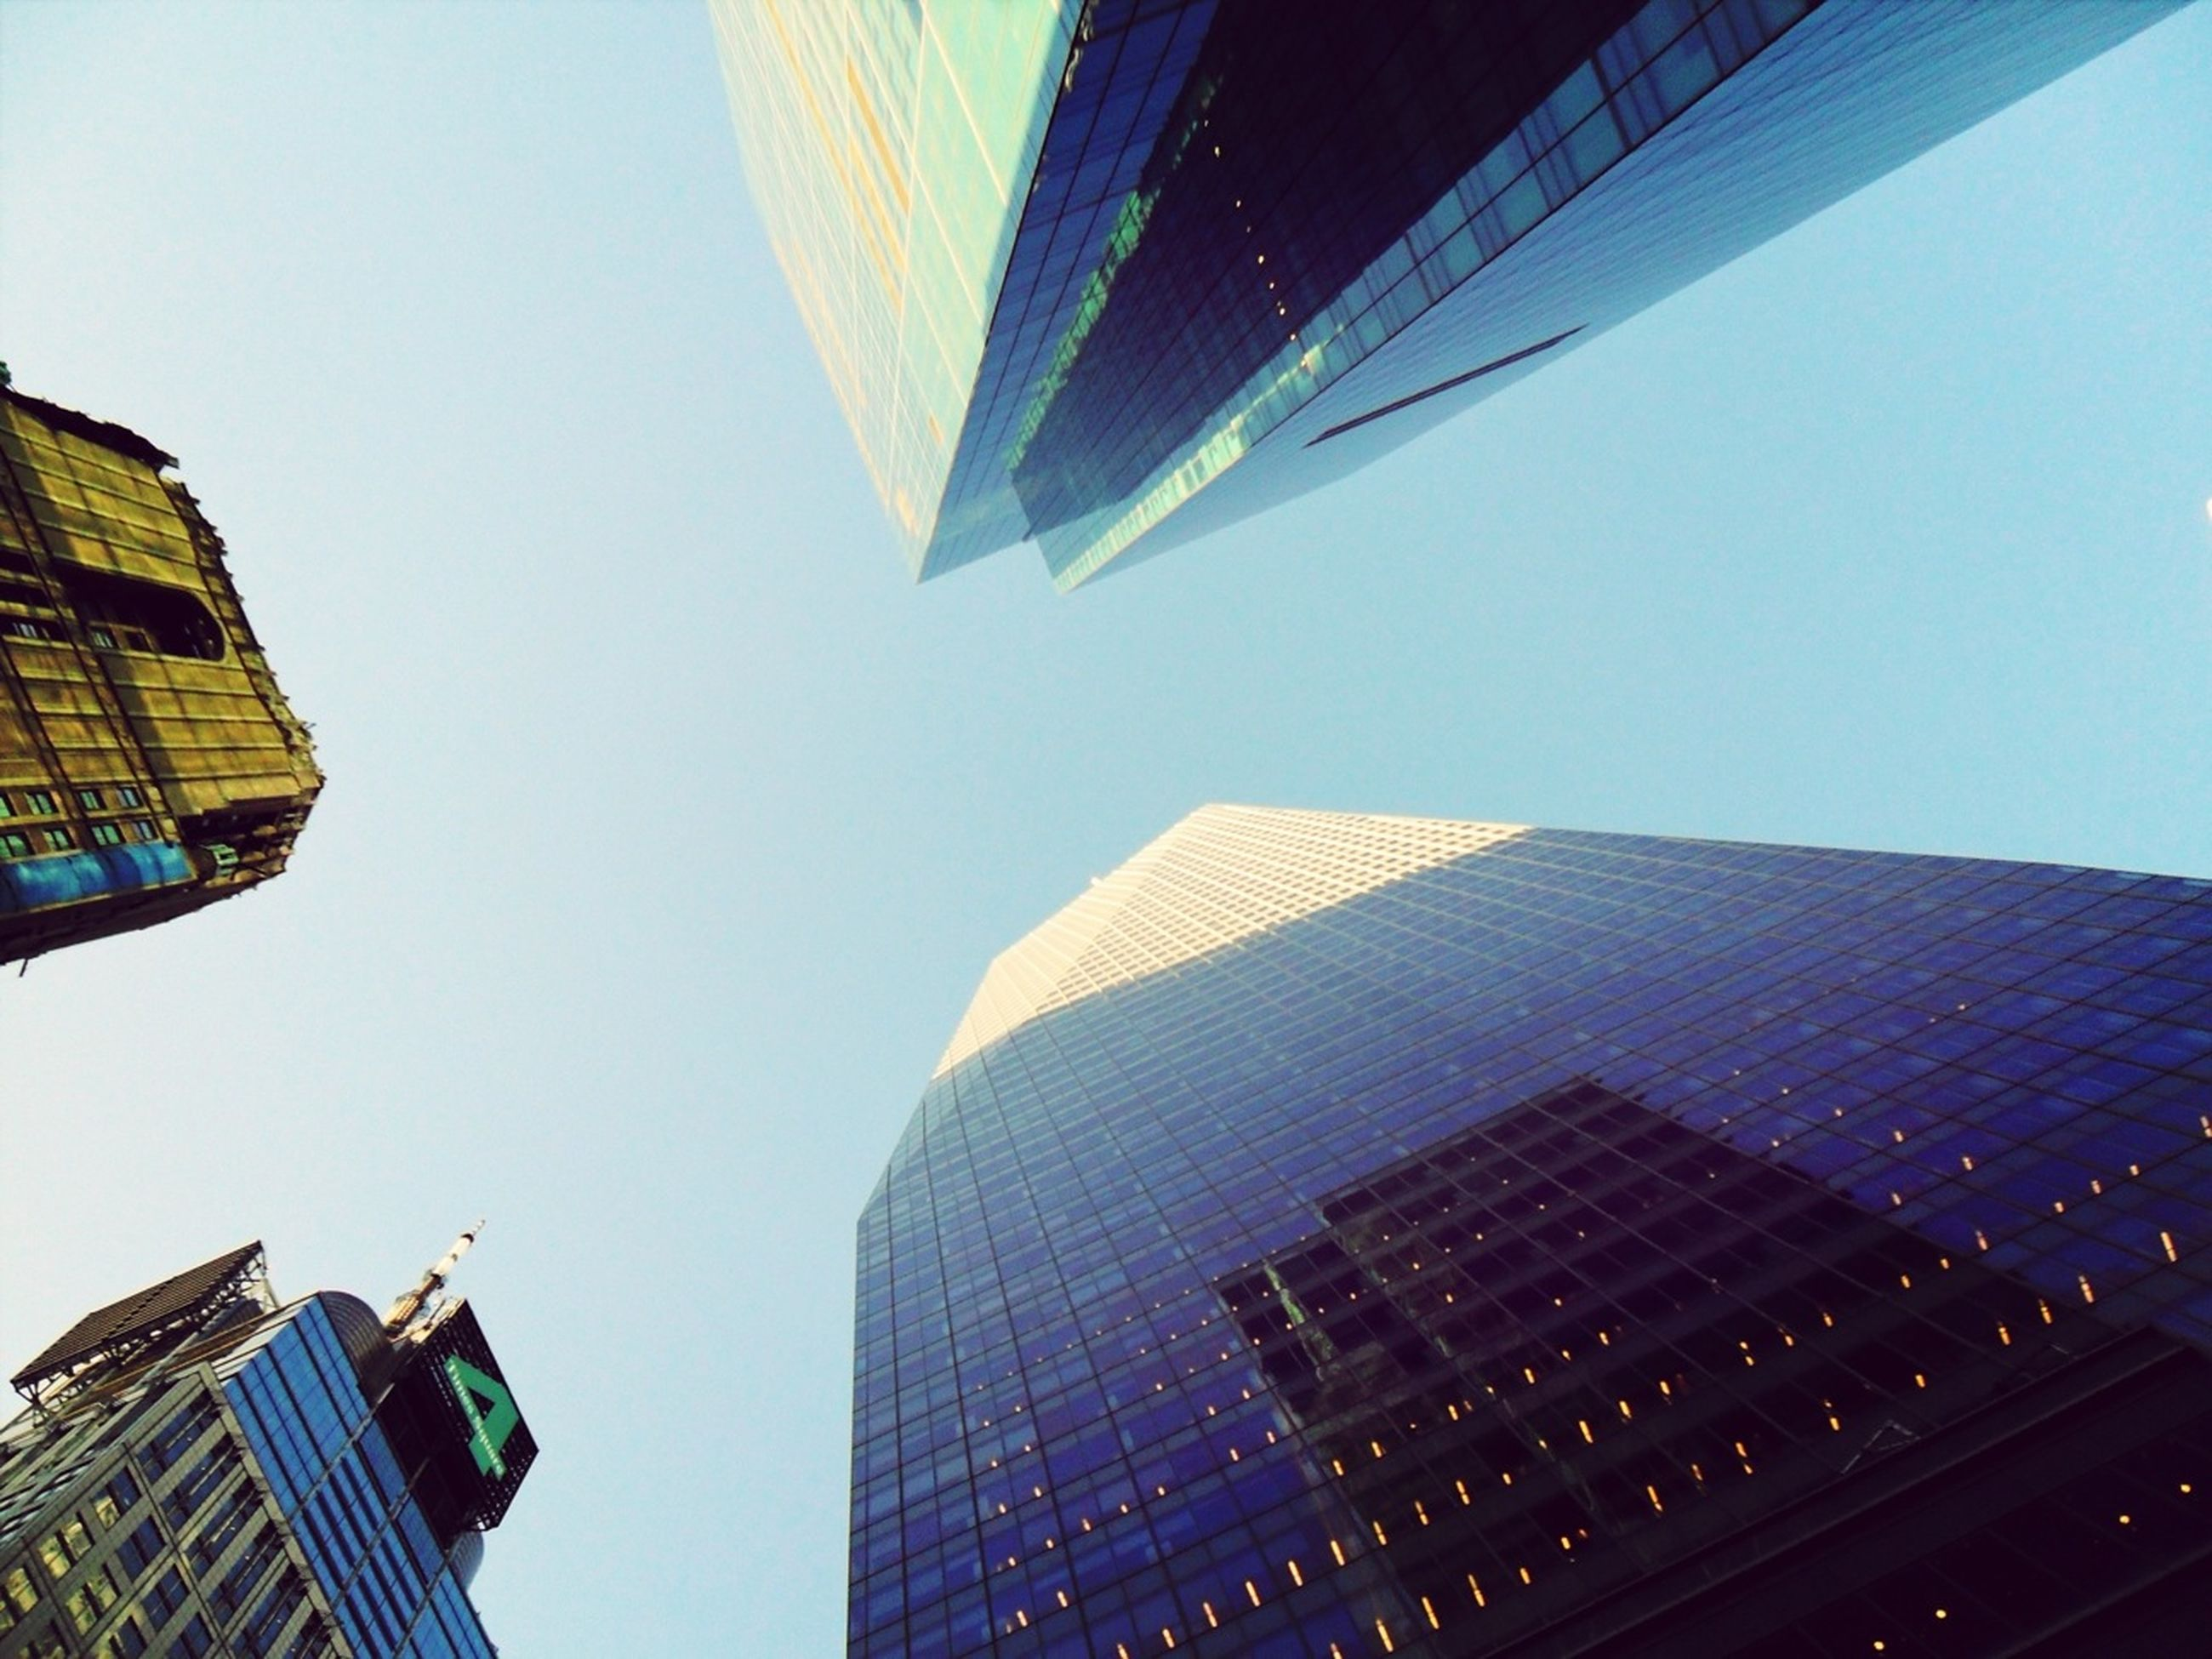 building exterior, architecture, built structure, skyscraper, modern, city, low angle view, office building, tall - high, tower, clear sky, building, city life, glass - material, financial district, blue, development, tall, reflection, day